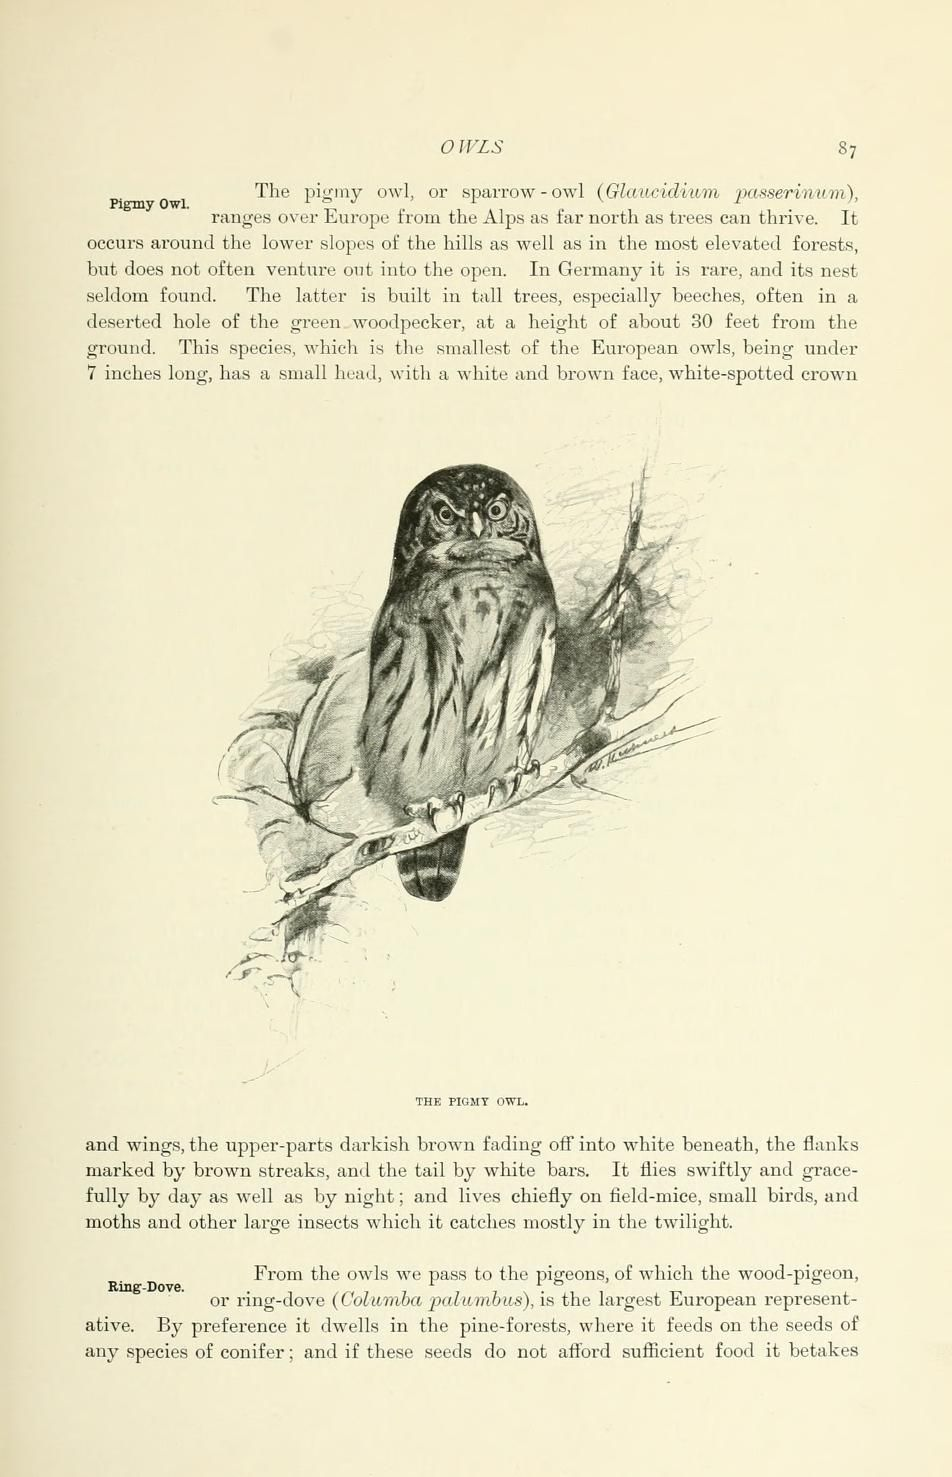 Pigmy Owl, Wild Life of the World, Richard Lydekker, 1916.